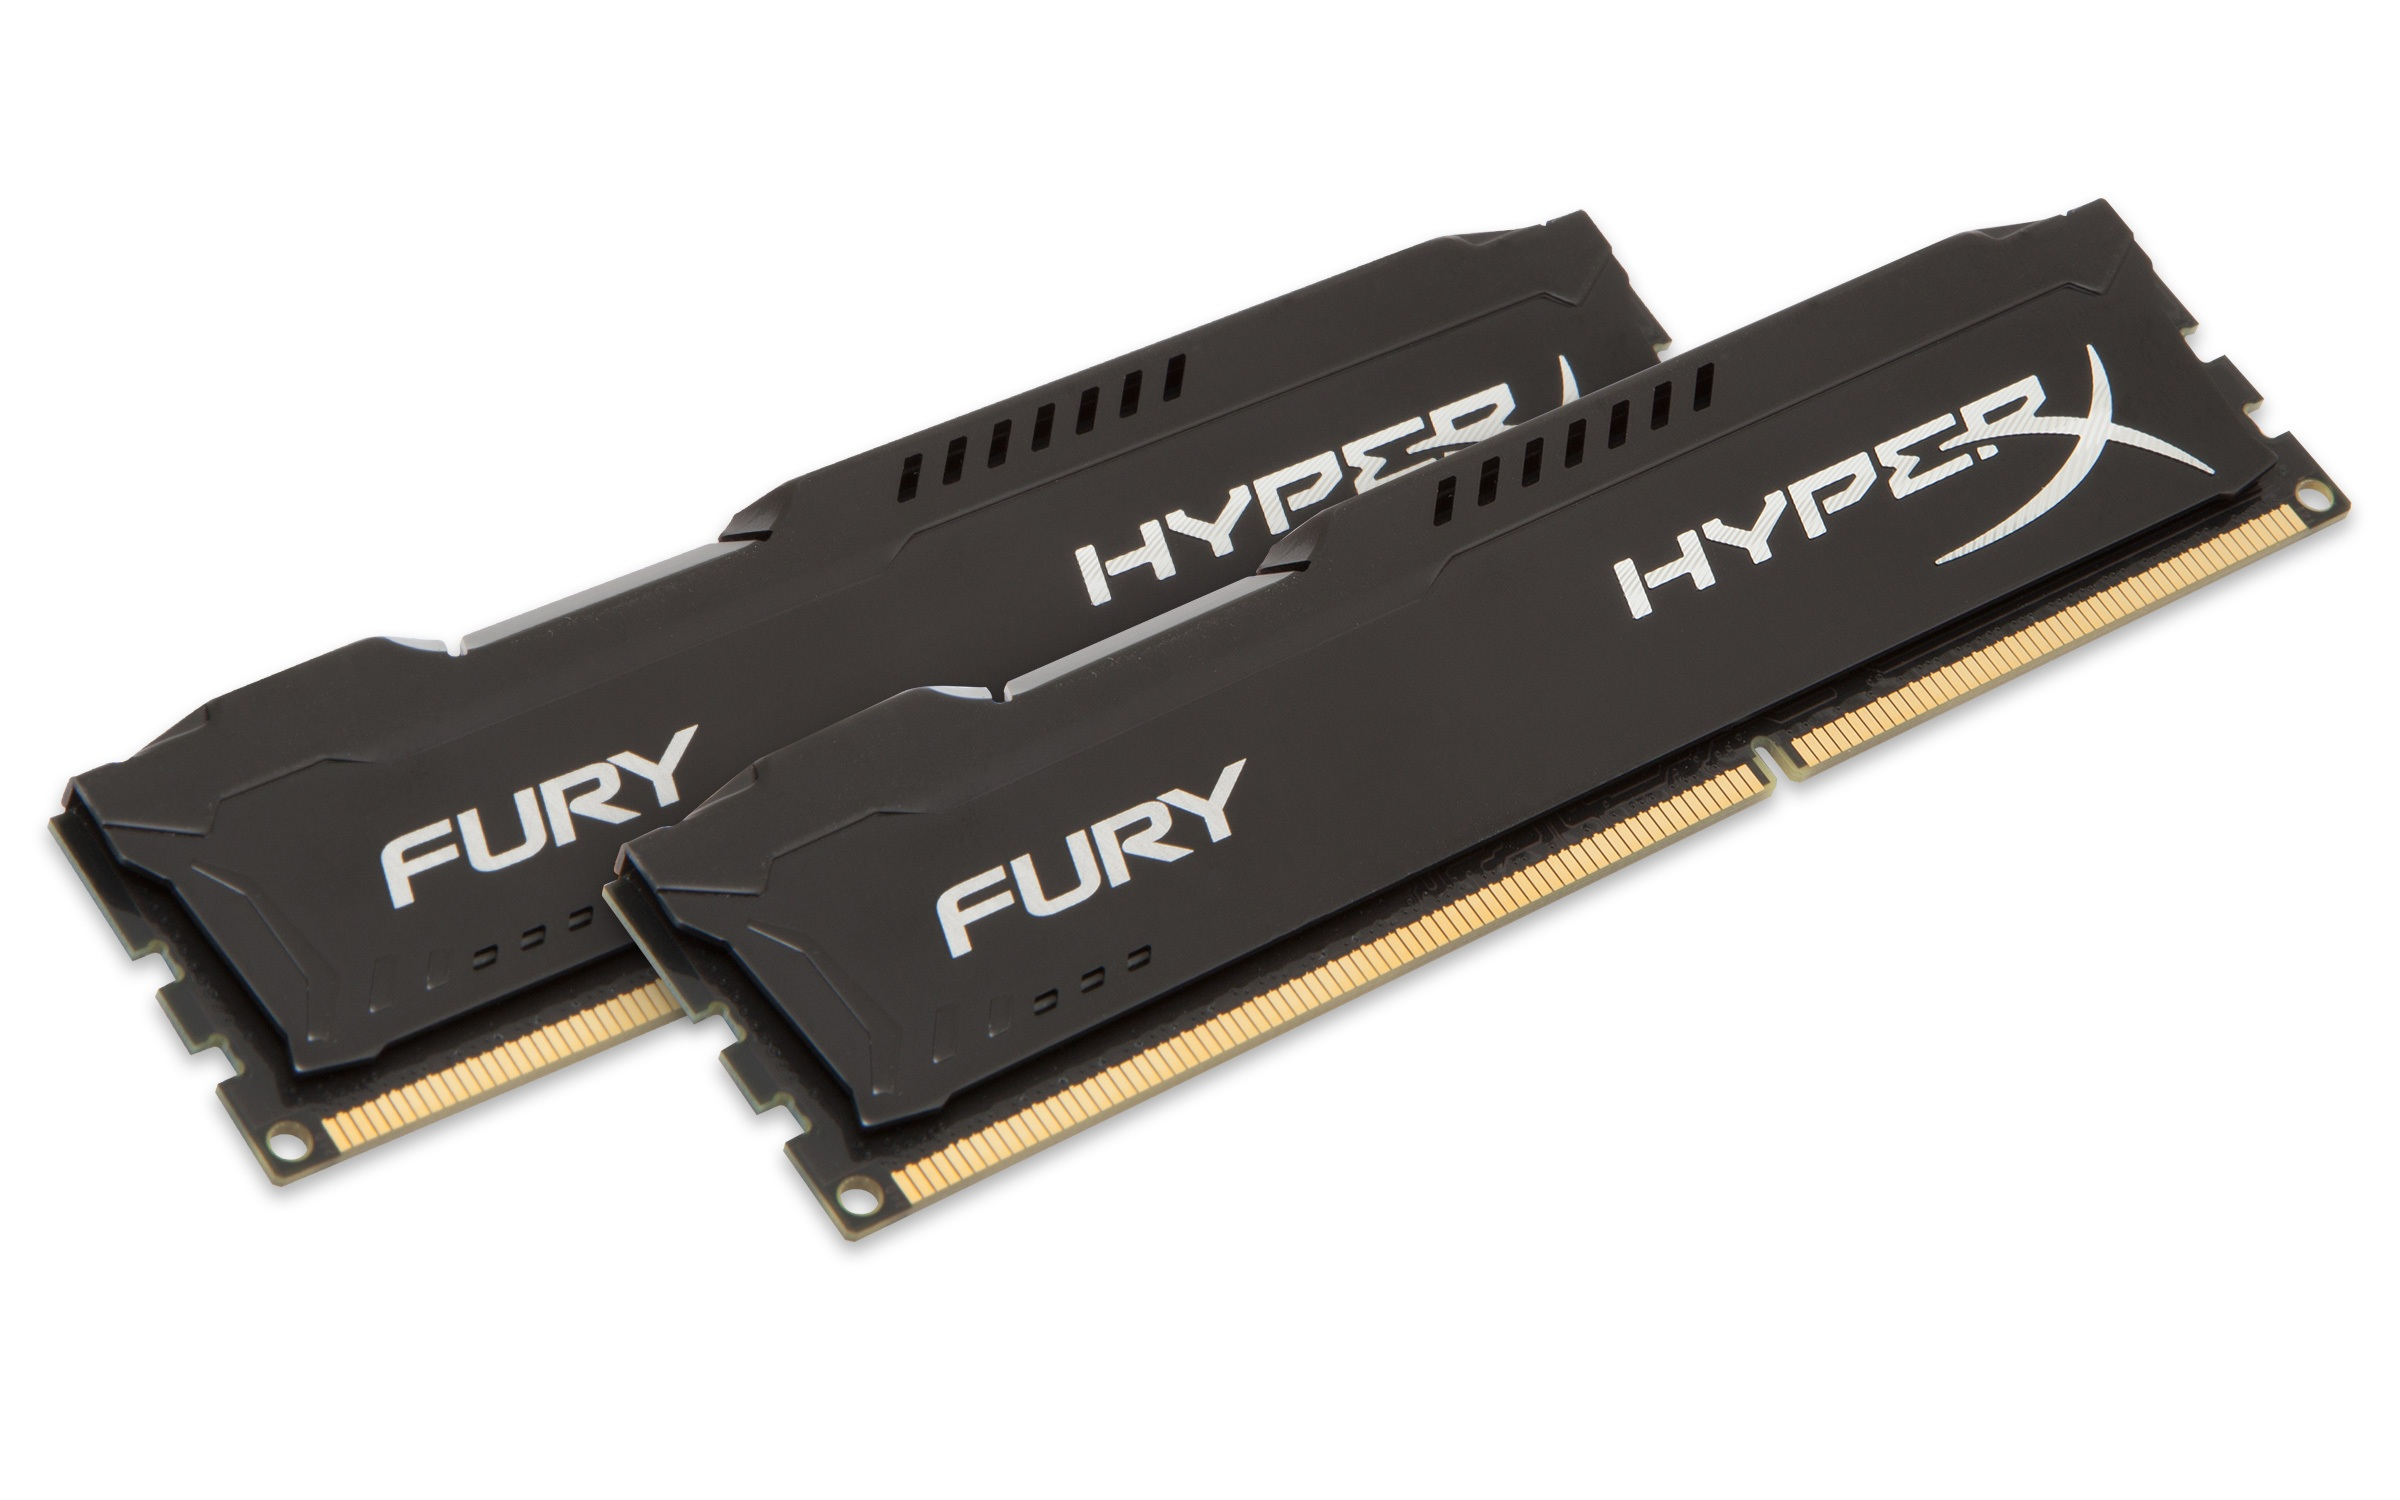 price of 16GB 1333MHz DDR3 CL9 DIMM (Kit of 2) HyperX FURY Black on ShopHub | ecommerce, price check, start a business, sell online